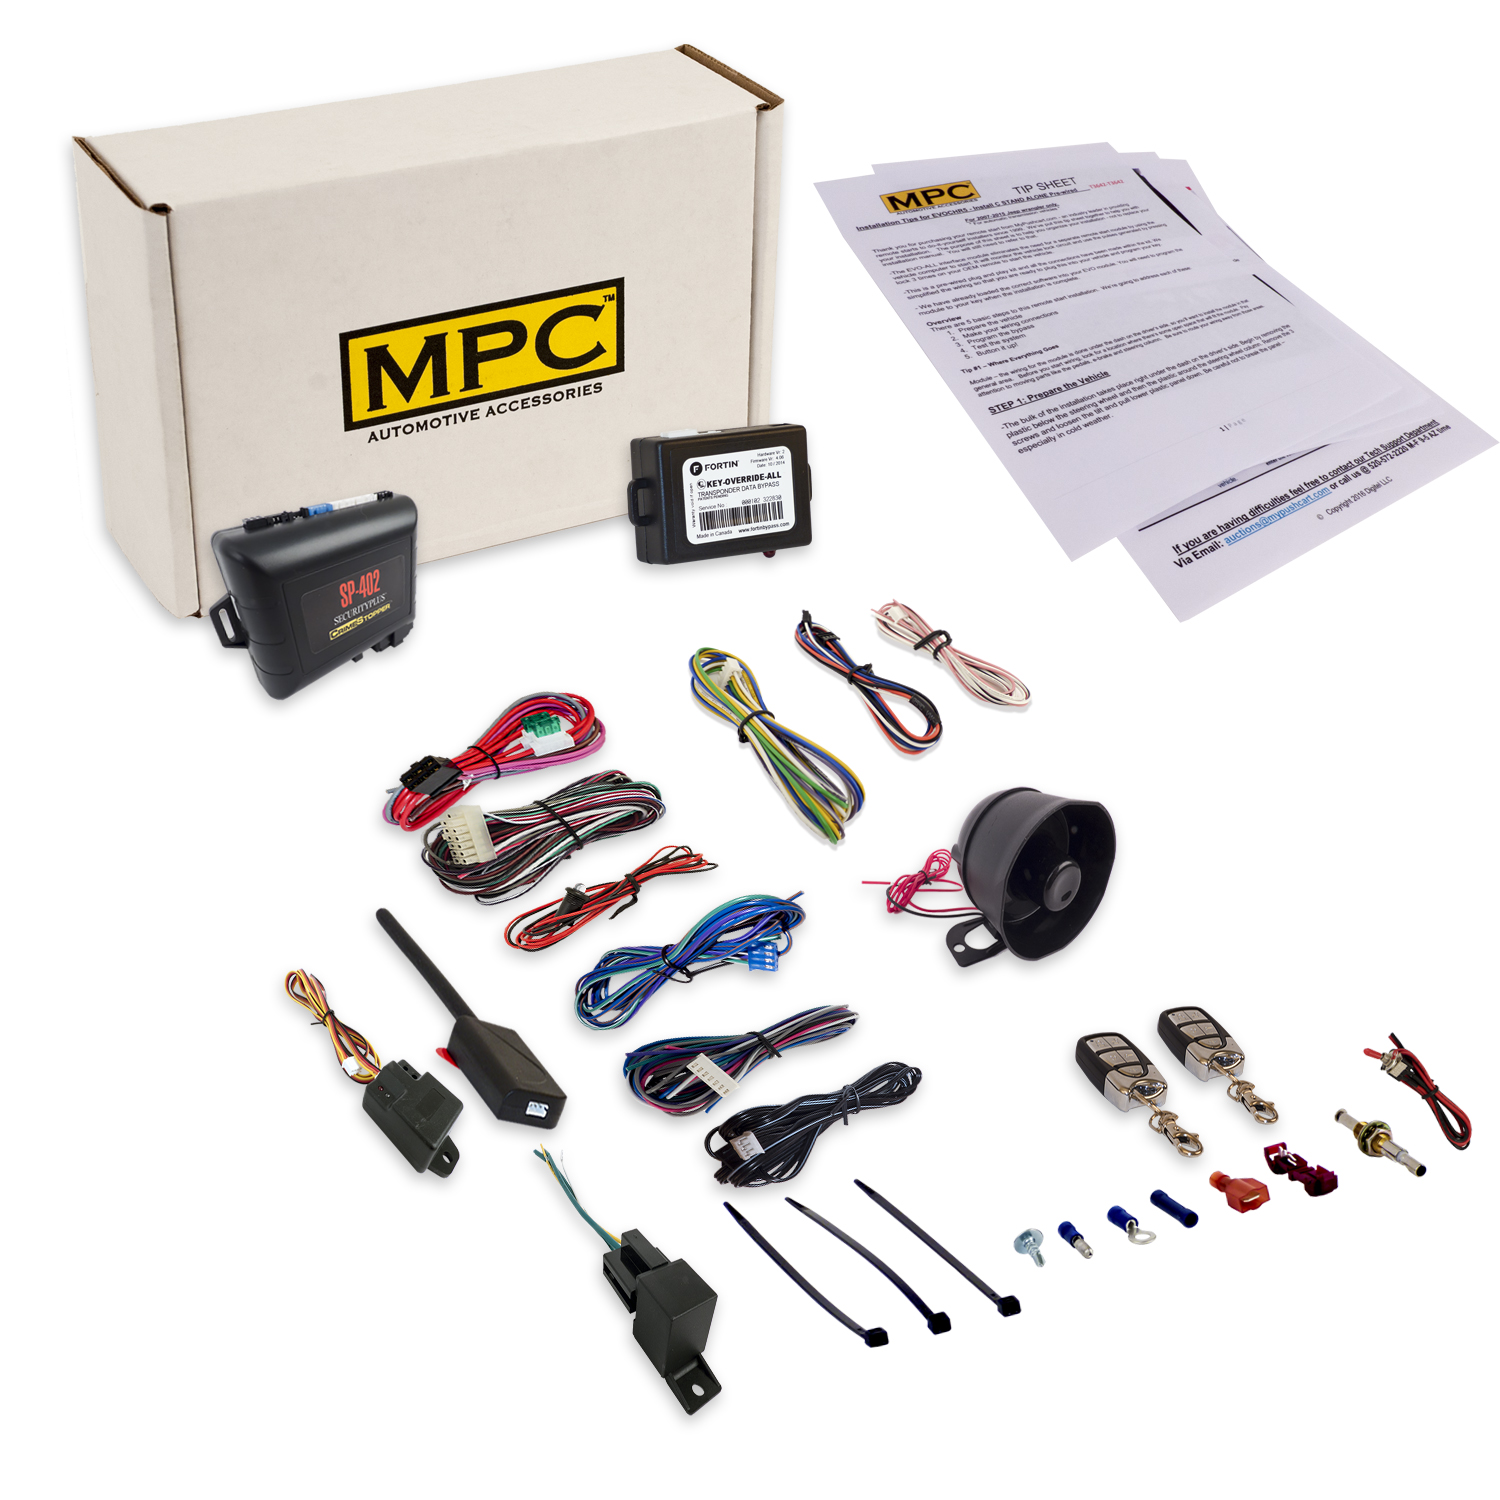 MPC Remote Starter & Alarm System for Lincoln Mazda Mercu...